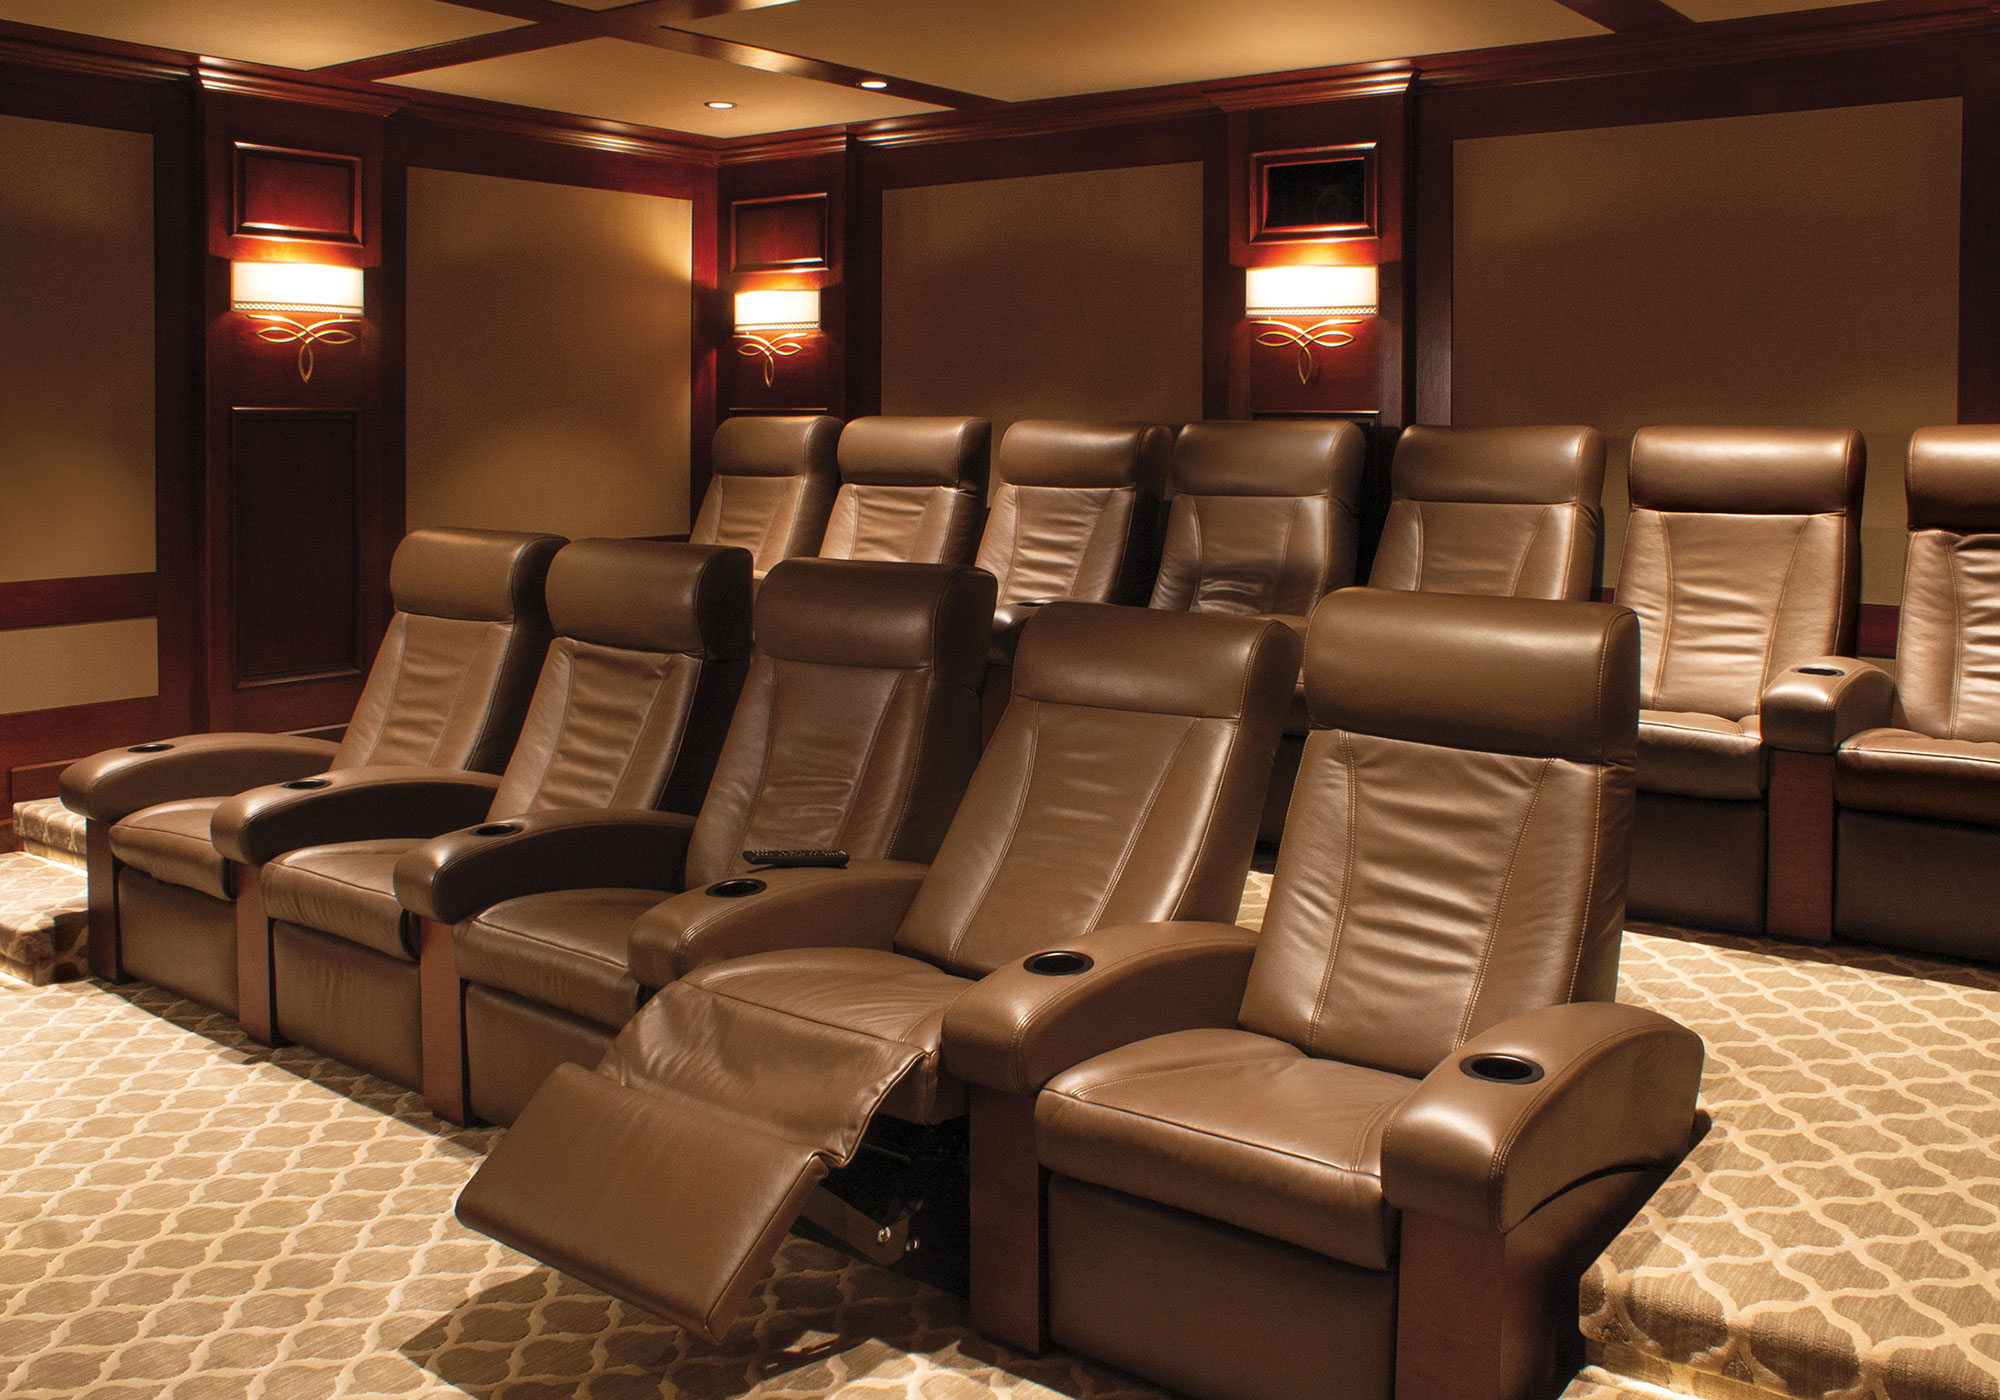 theater, seating, cineak, projection system